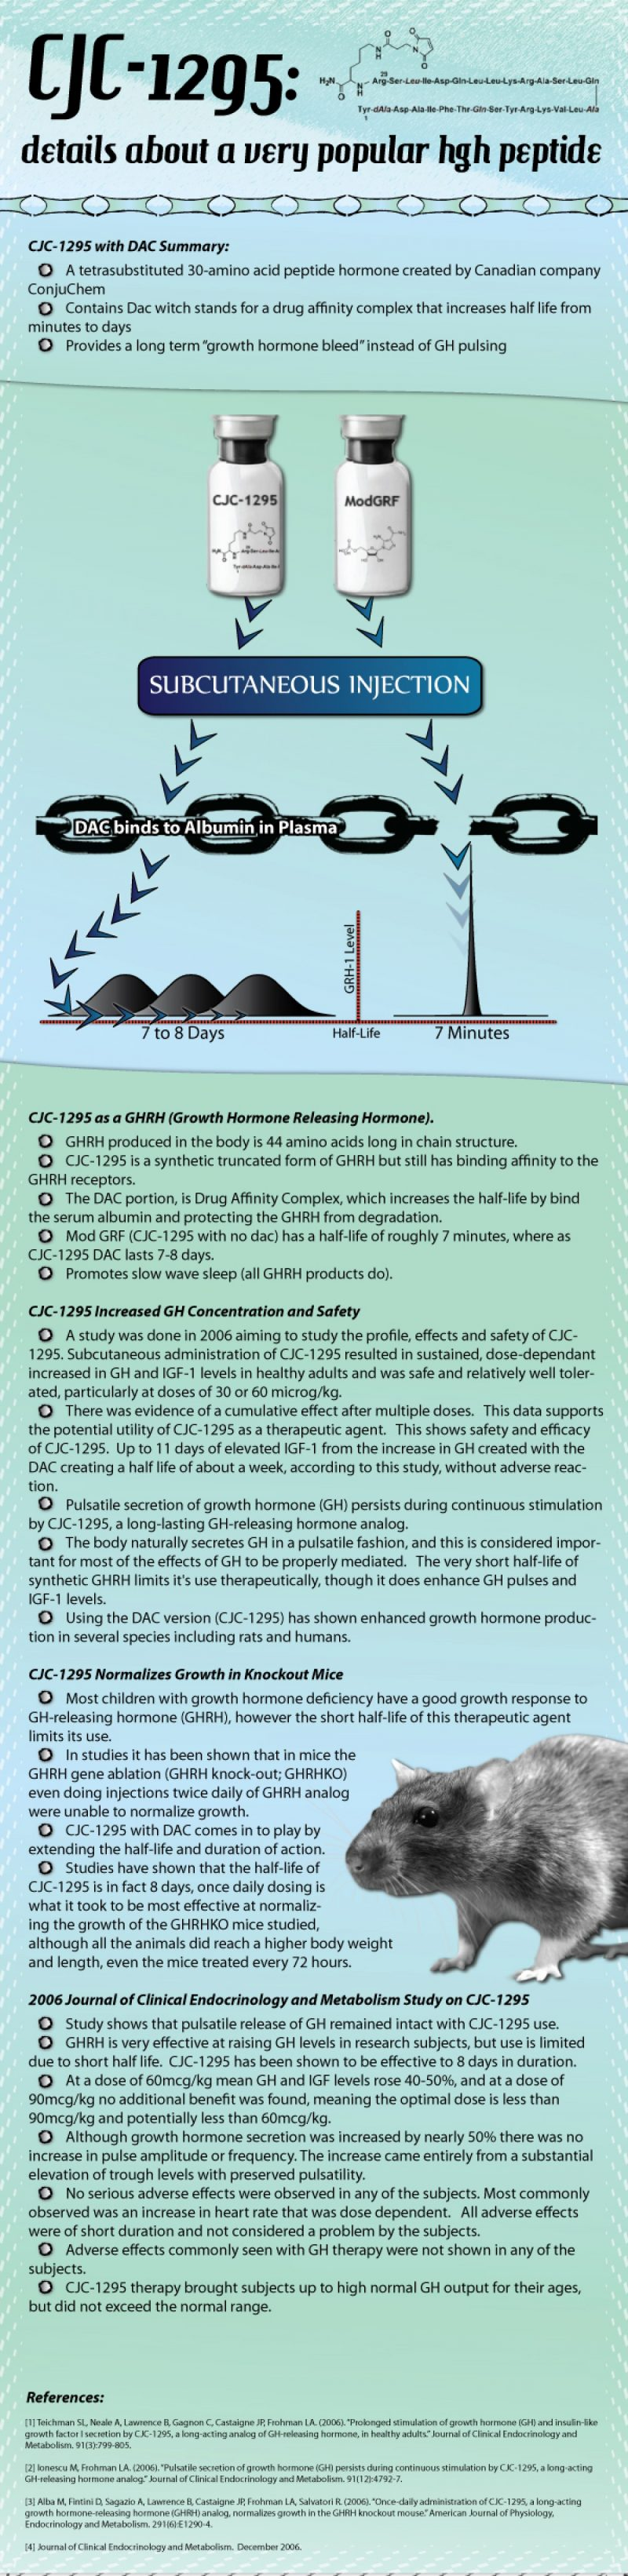 CJC-1295: details about a very popular hgh peptide Infographic